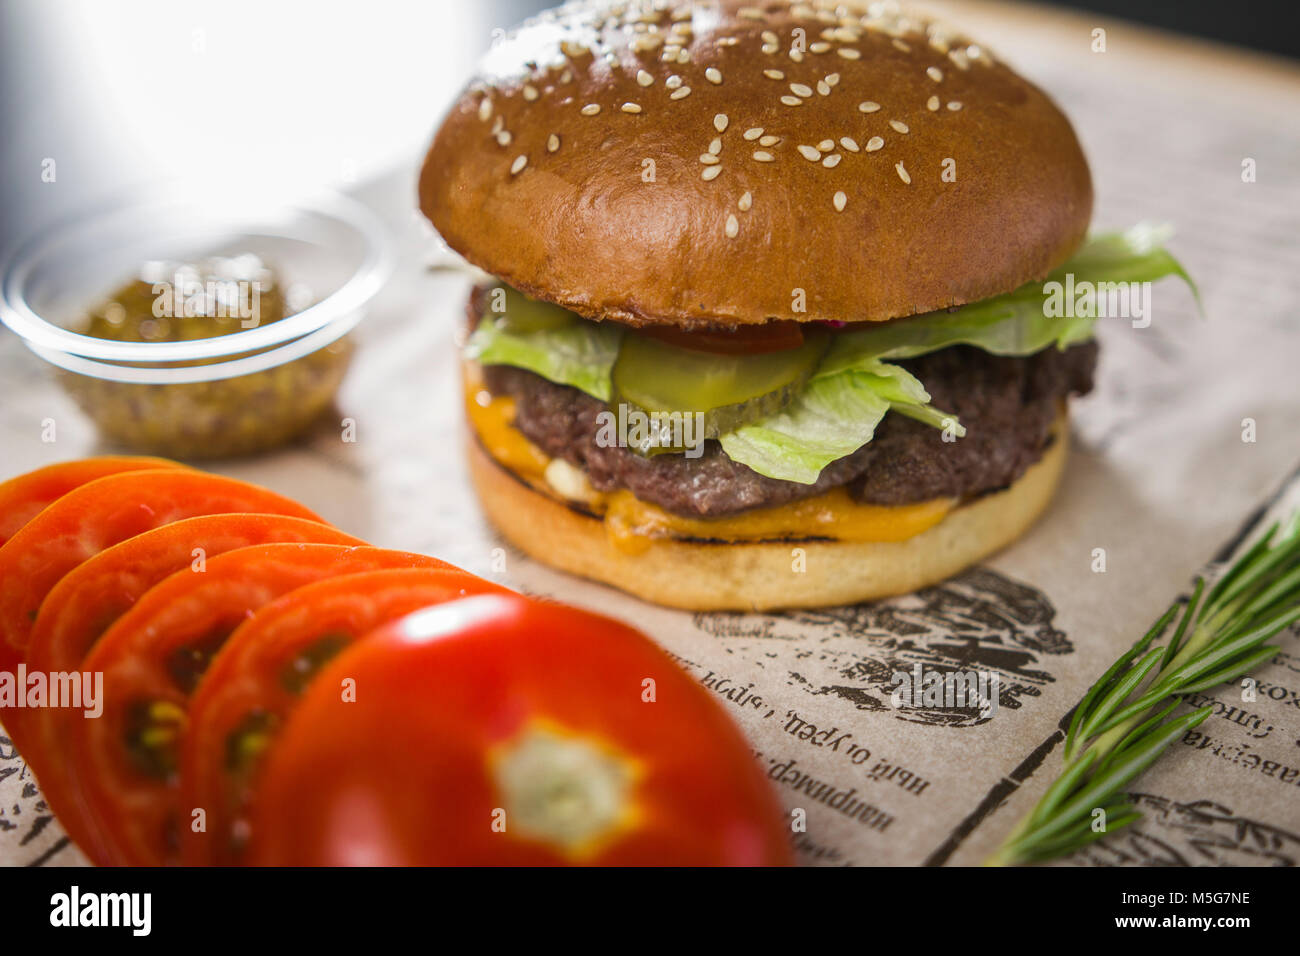 Big tasty burger on the table - Stock Image